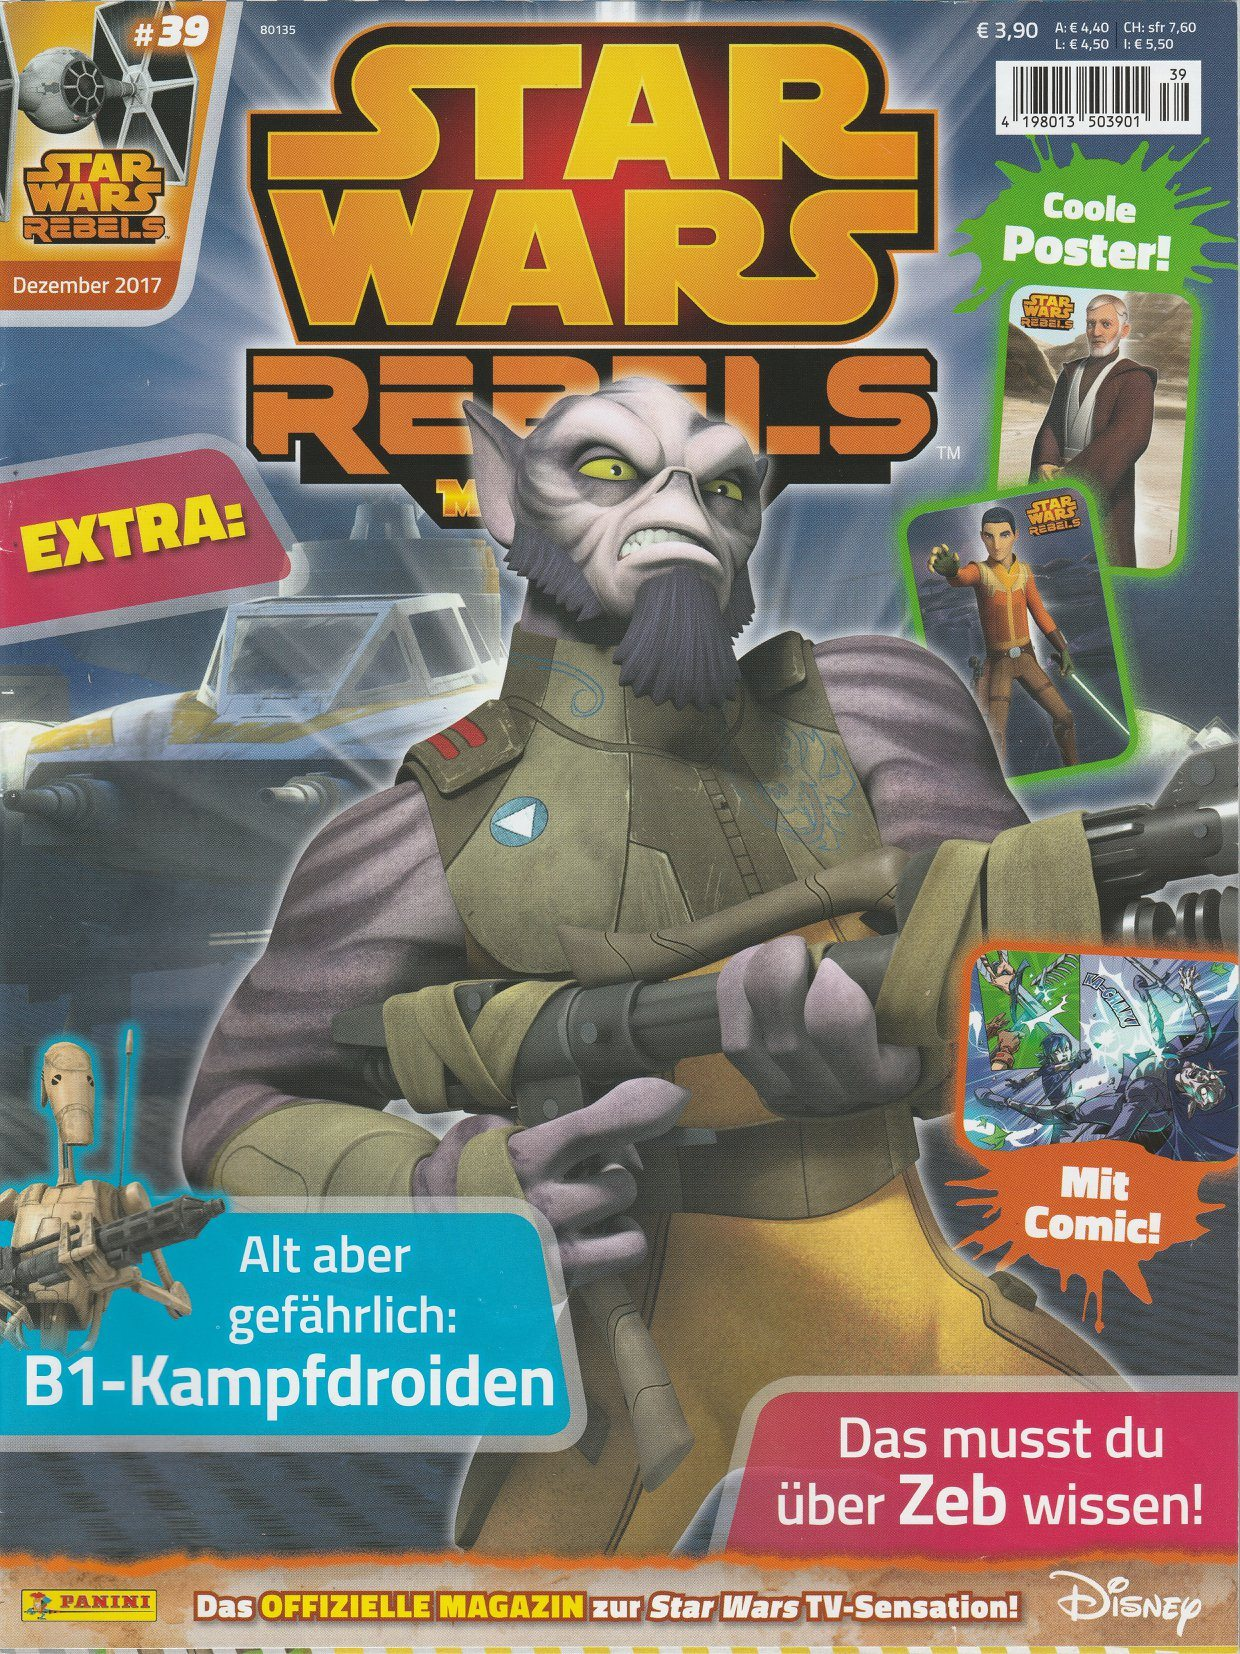 Star Wars Rebels Magazin 39 (Germany)